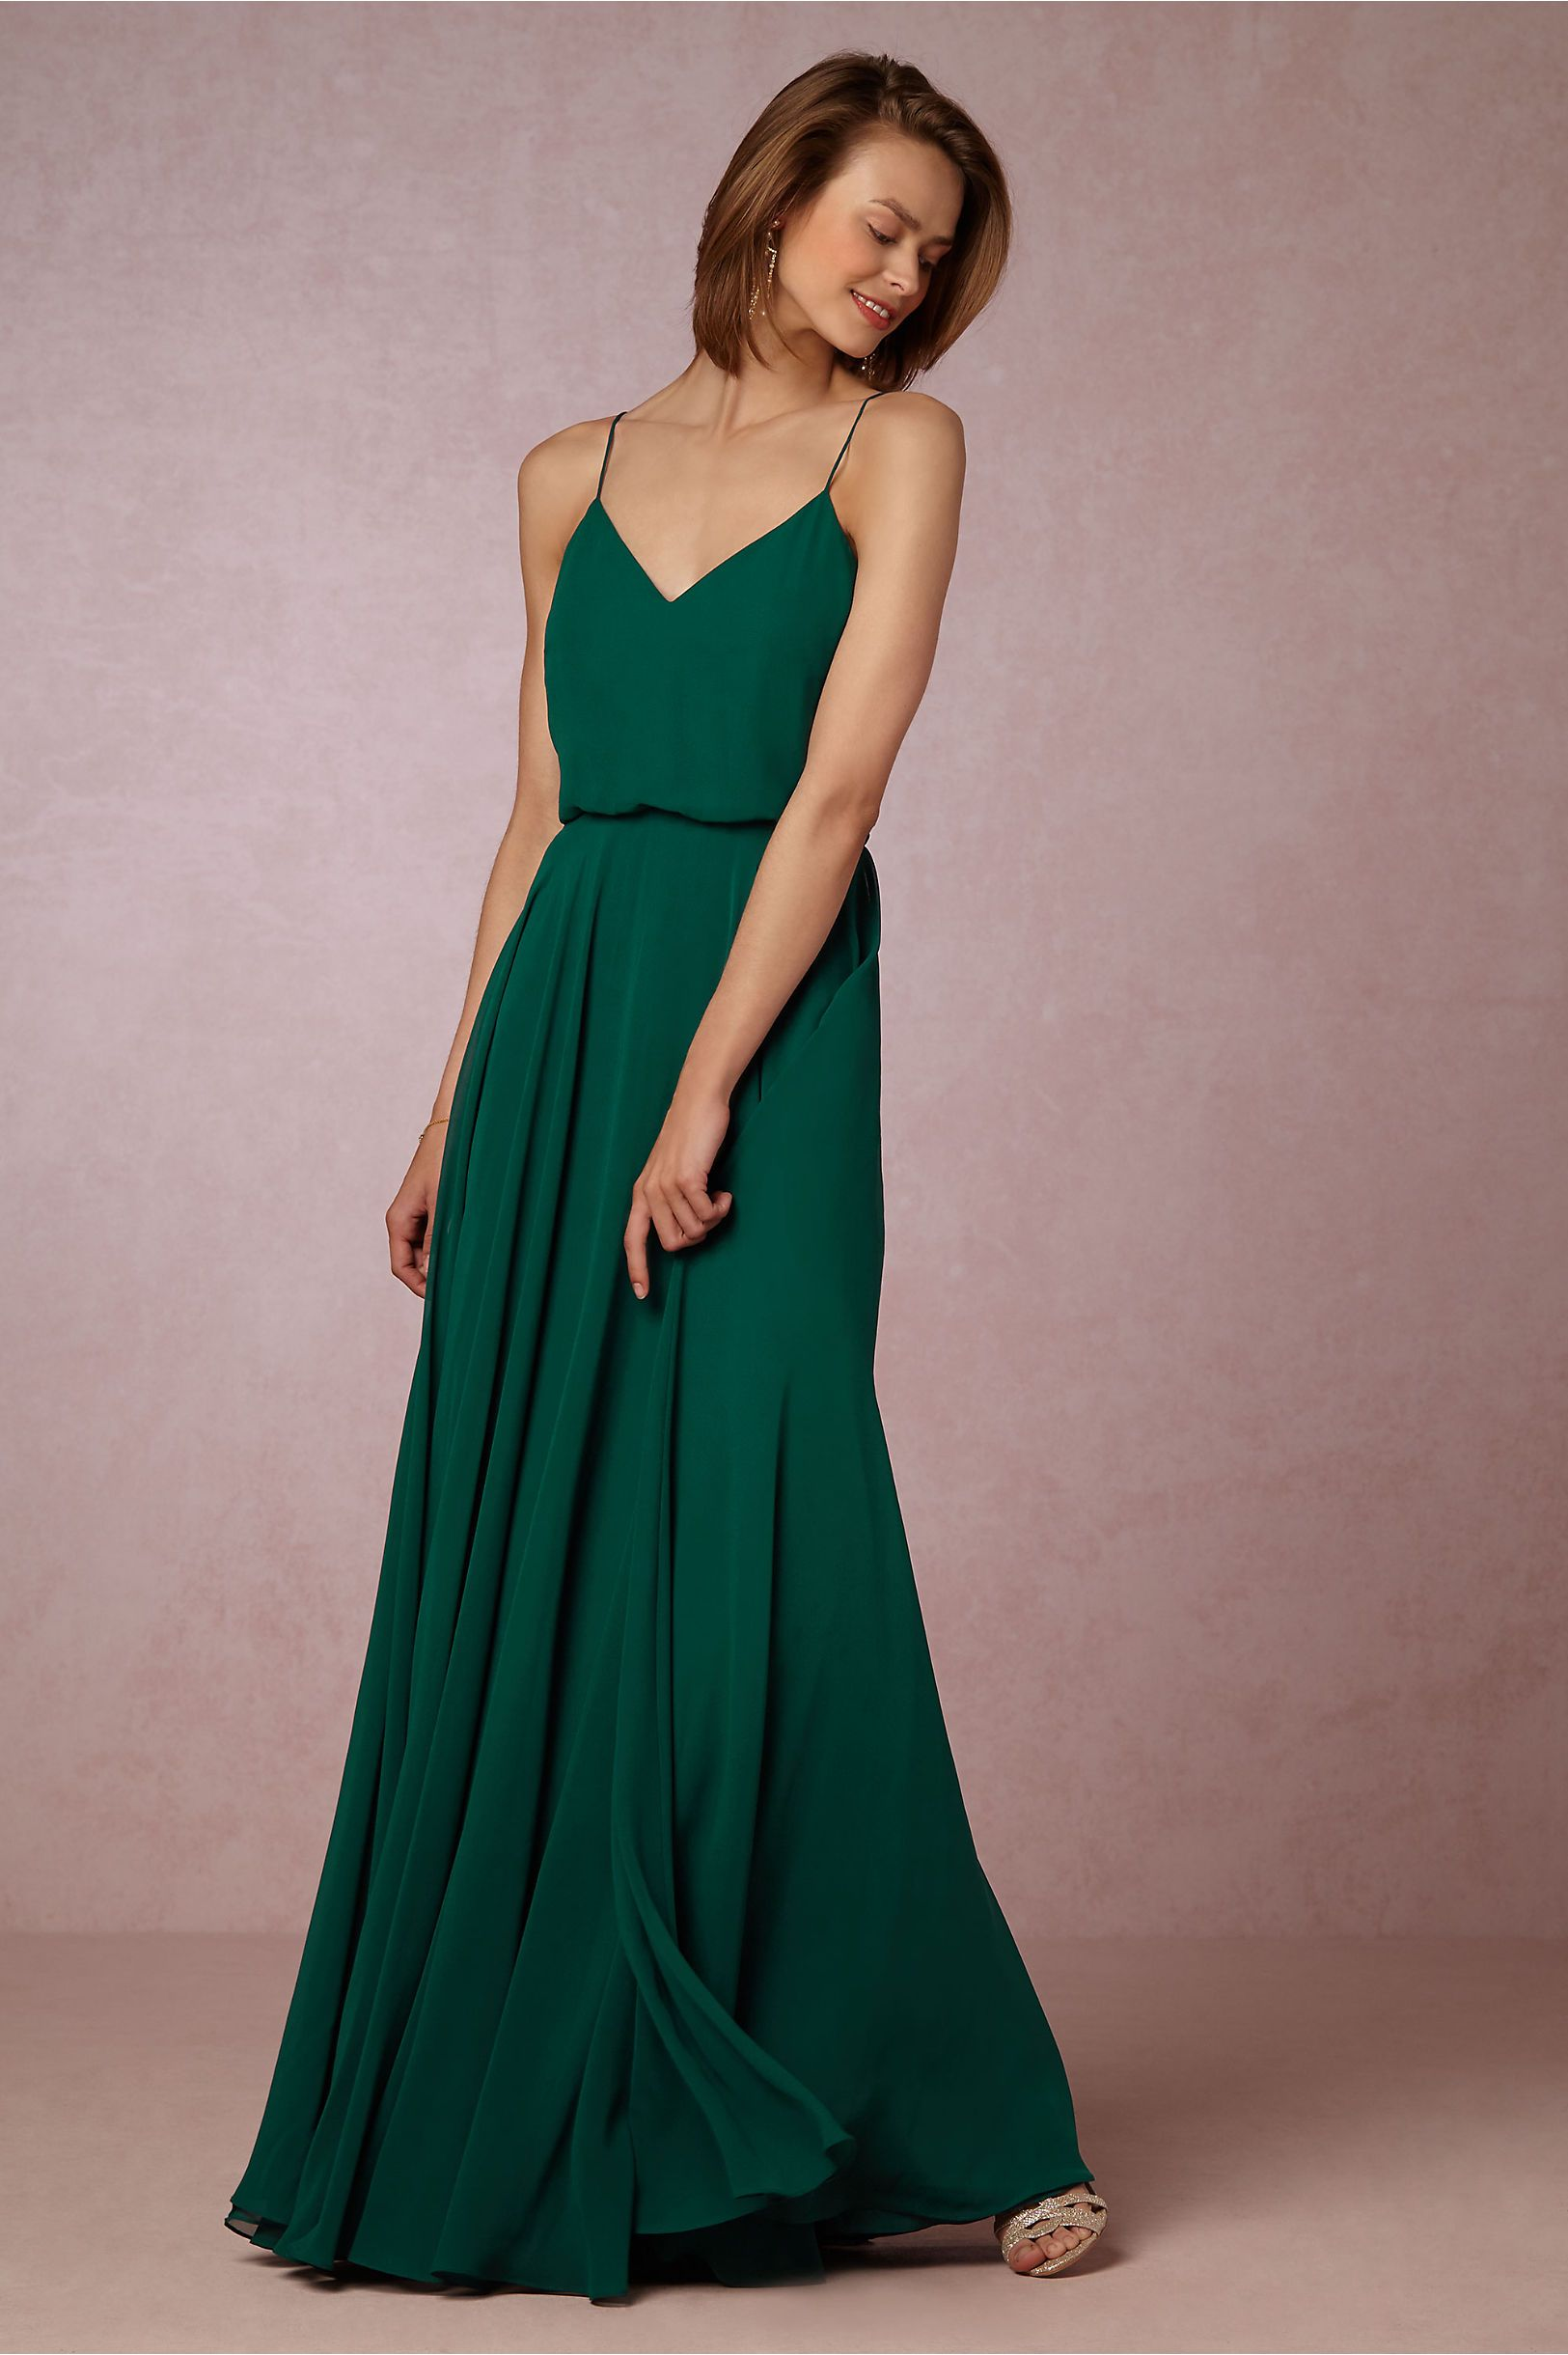 Wedding dresses guest  Inesse Dress in Bridesmaids Maid of Honor Dresses at BHLDN  Bres